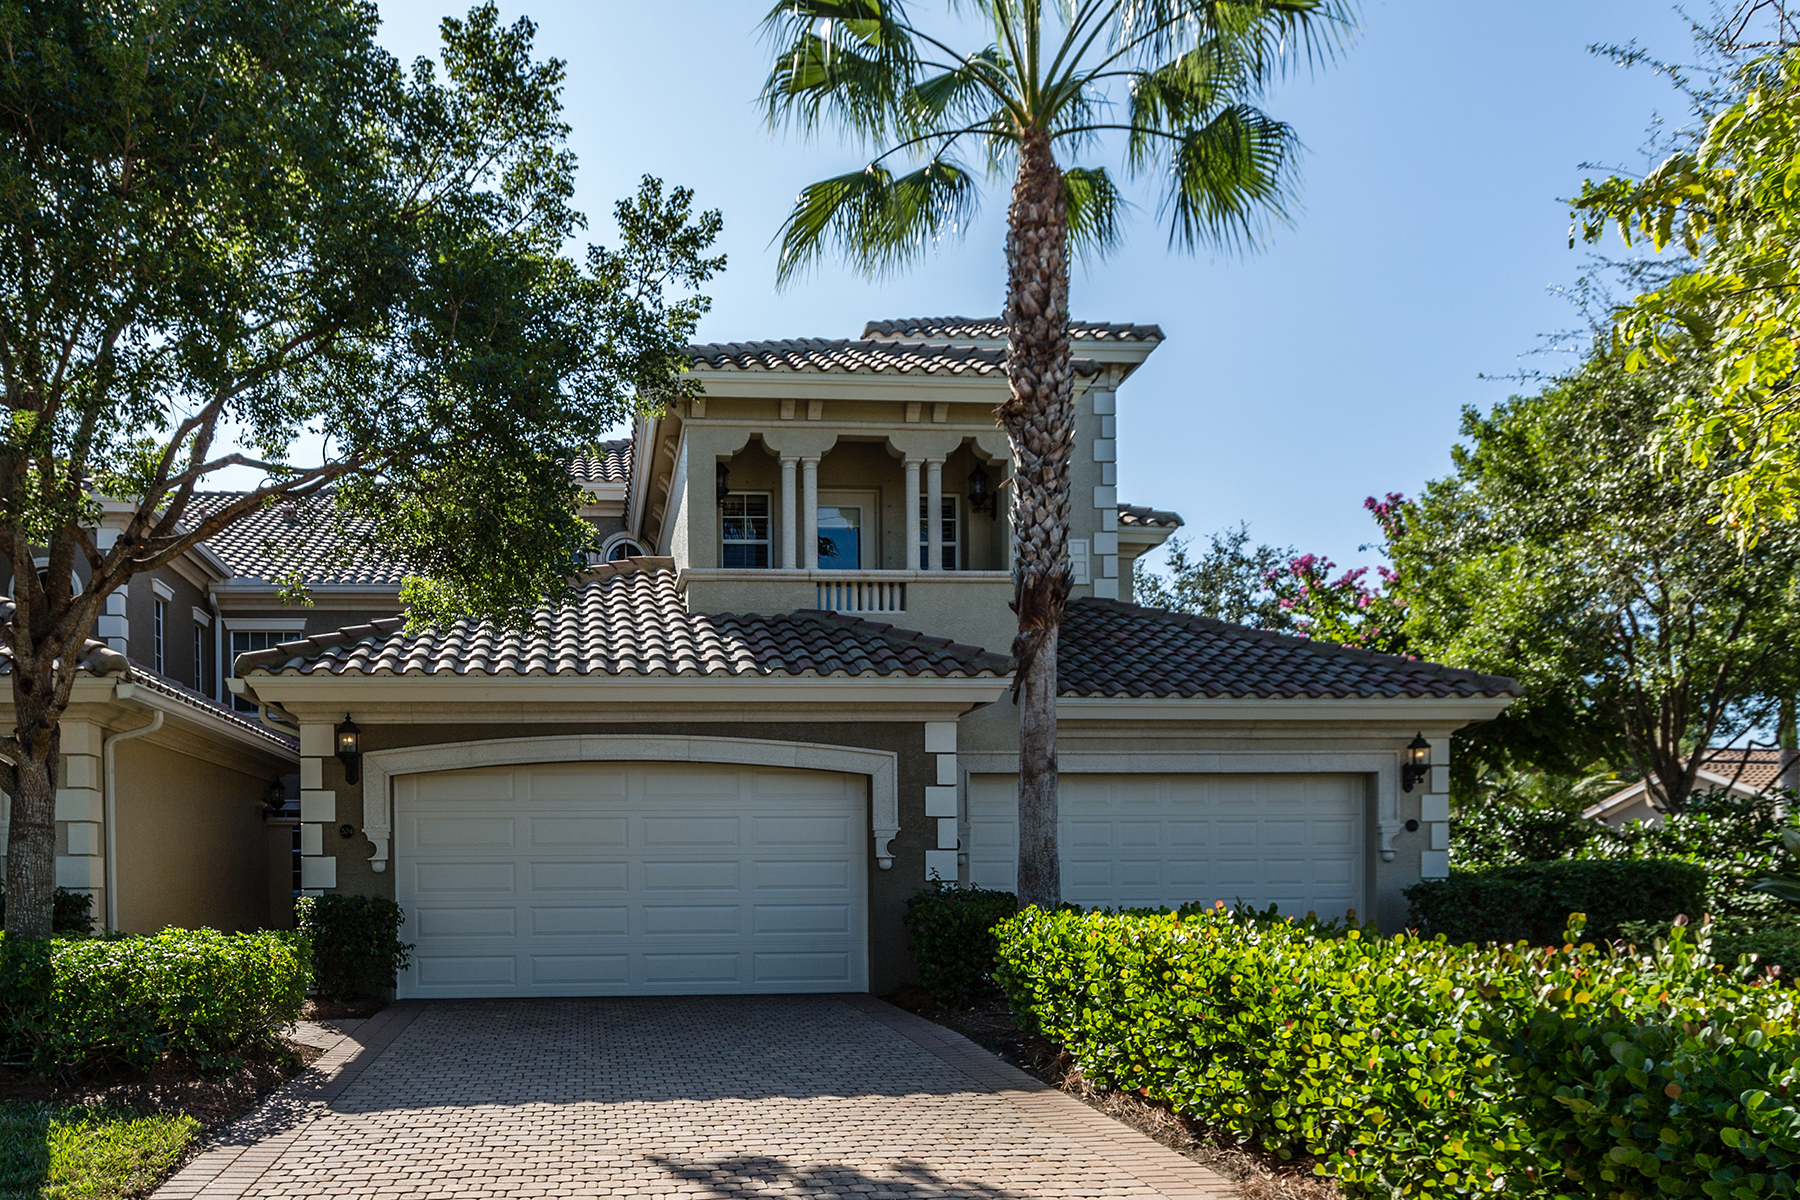 Condominium for Sale at FIDDLERS CREEK 9202 Museo Cir 204 Naples, Florida, 34114 United States